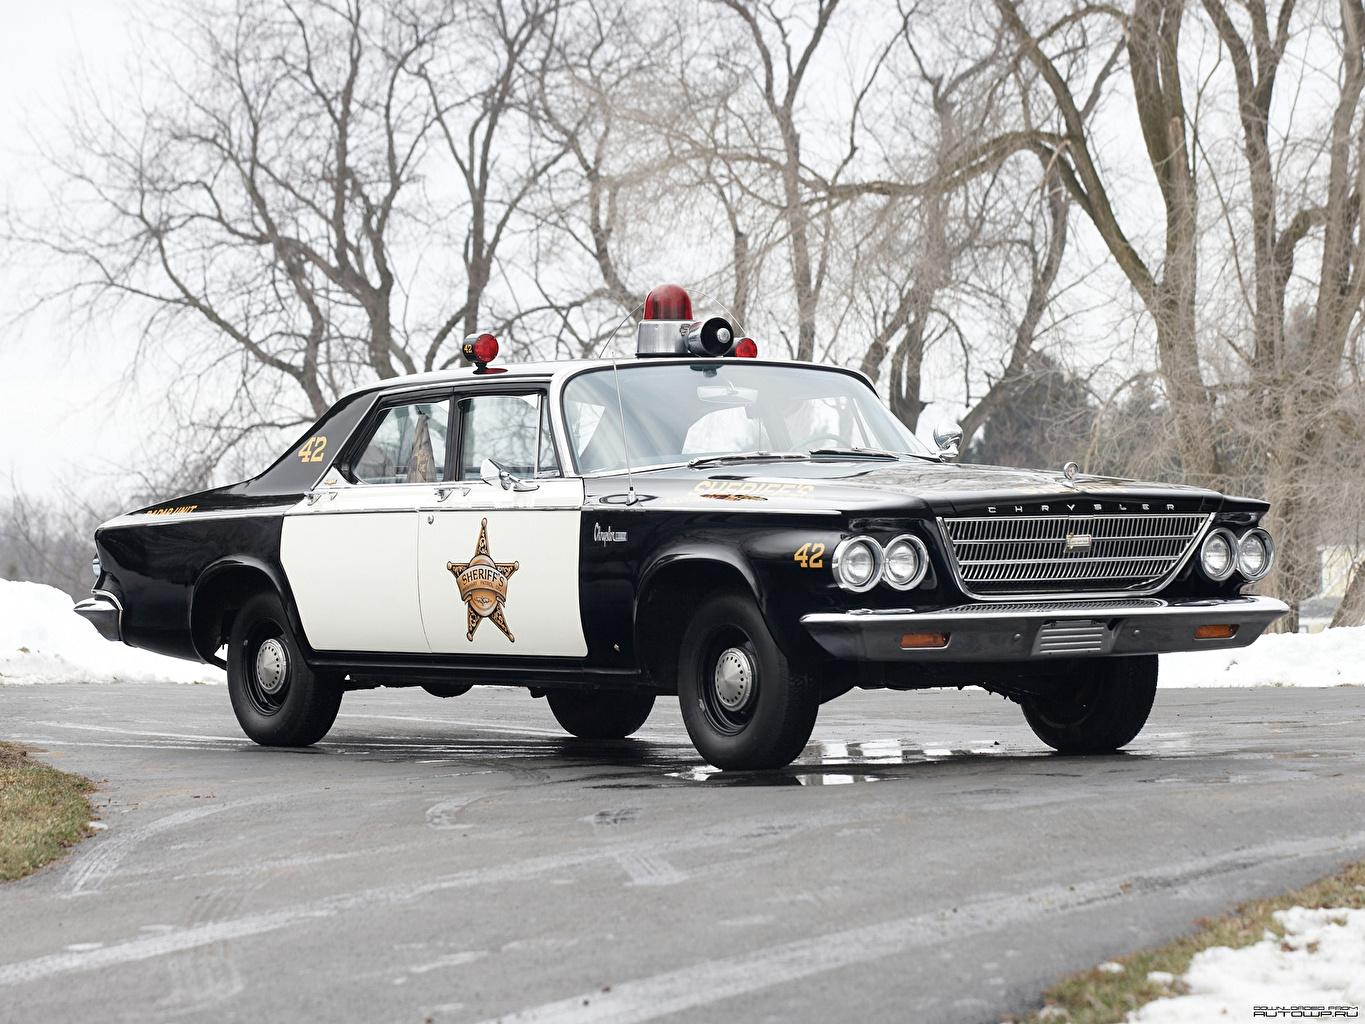 Wallpapers Chrysler Newport Police Cruiser 1963 automobile